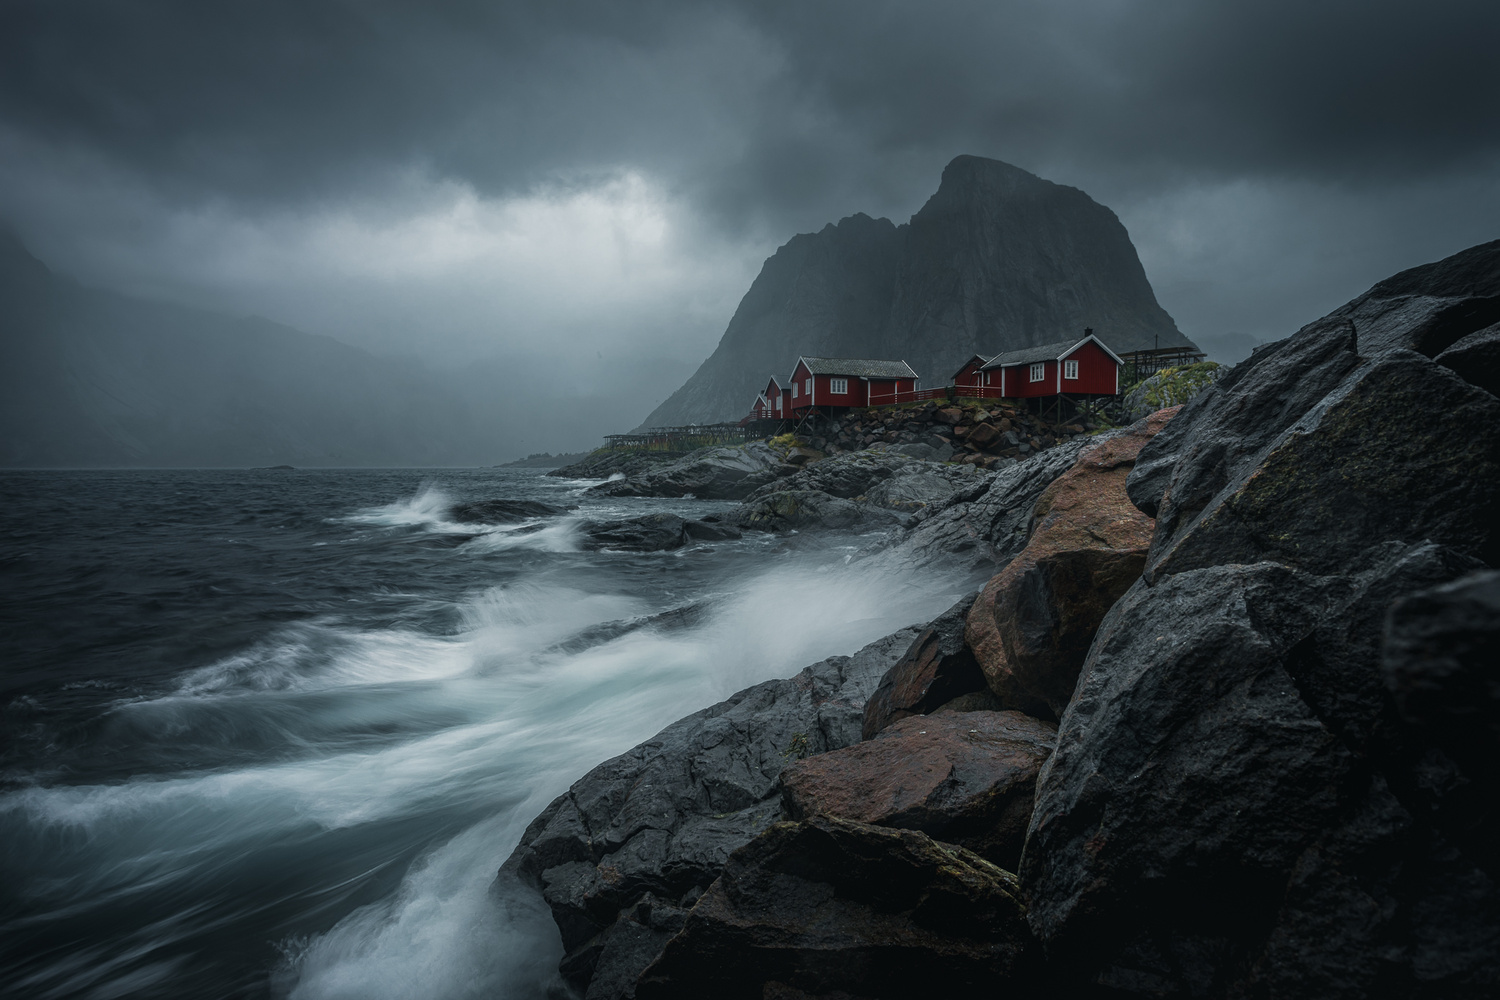 A stormy morning in Lofoten by Roger Kristiansen